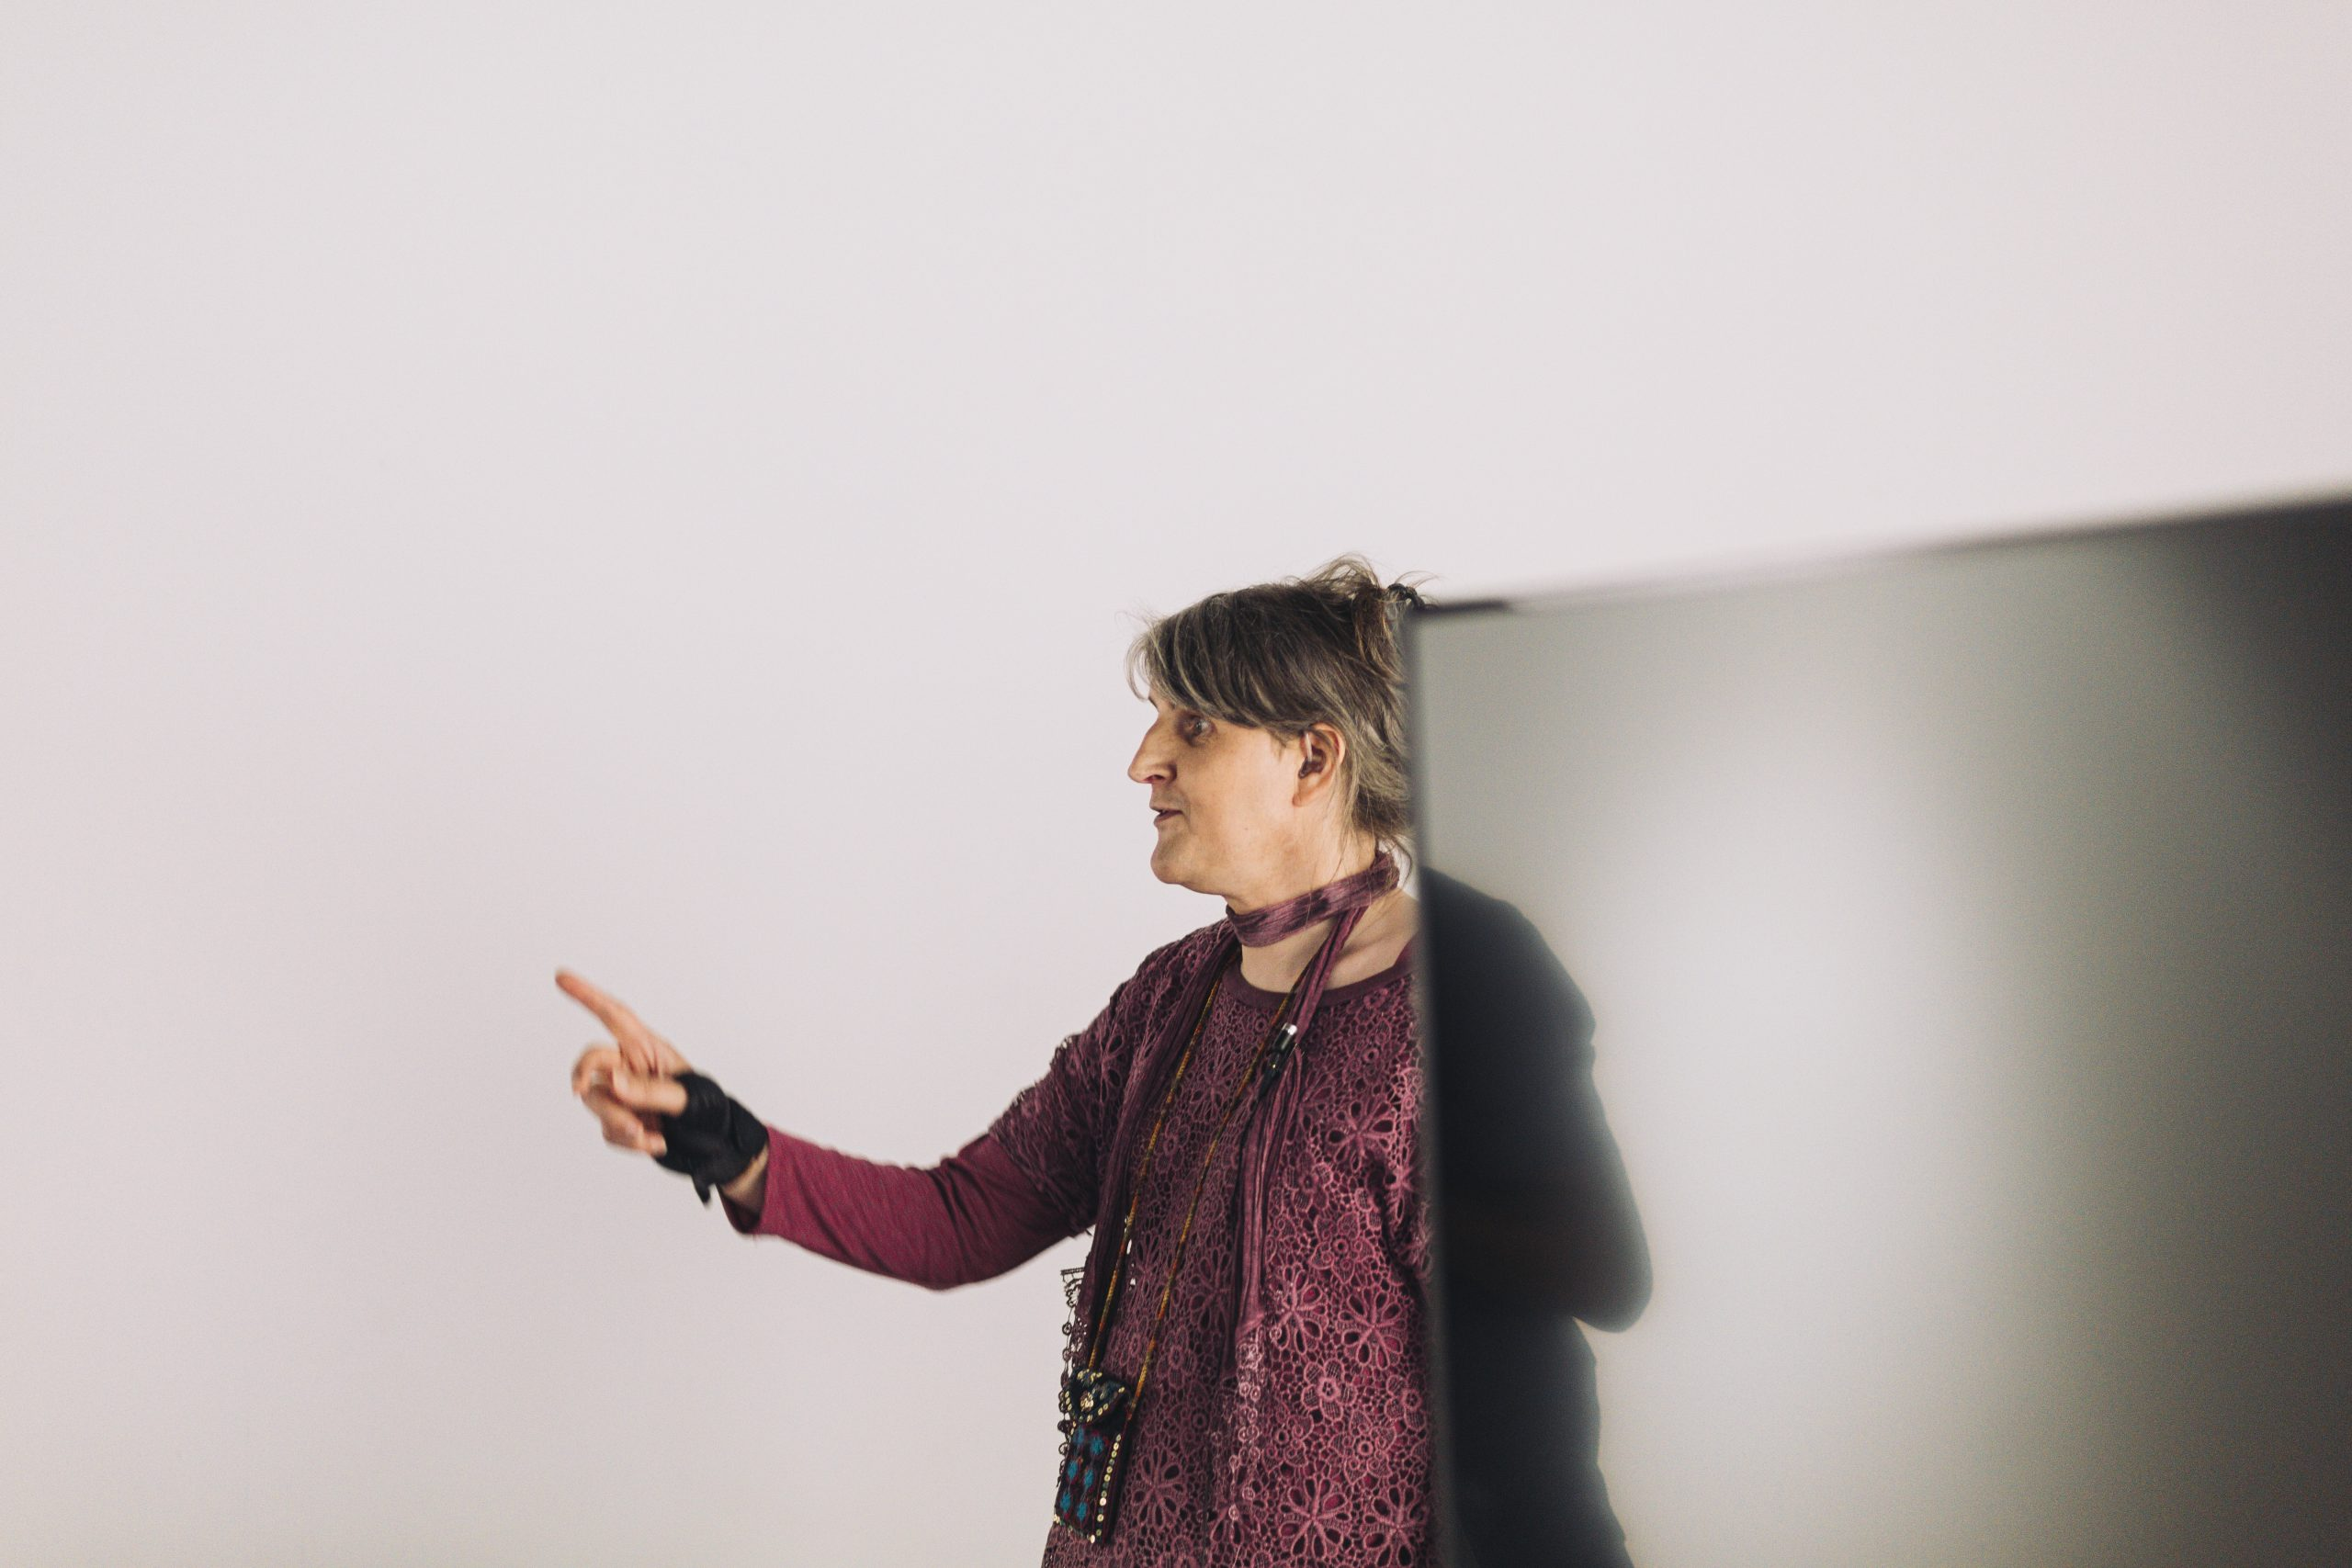 Michelle stands pointing off camera, standing behind a screen during our Recover, Restart and Reimagine project